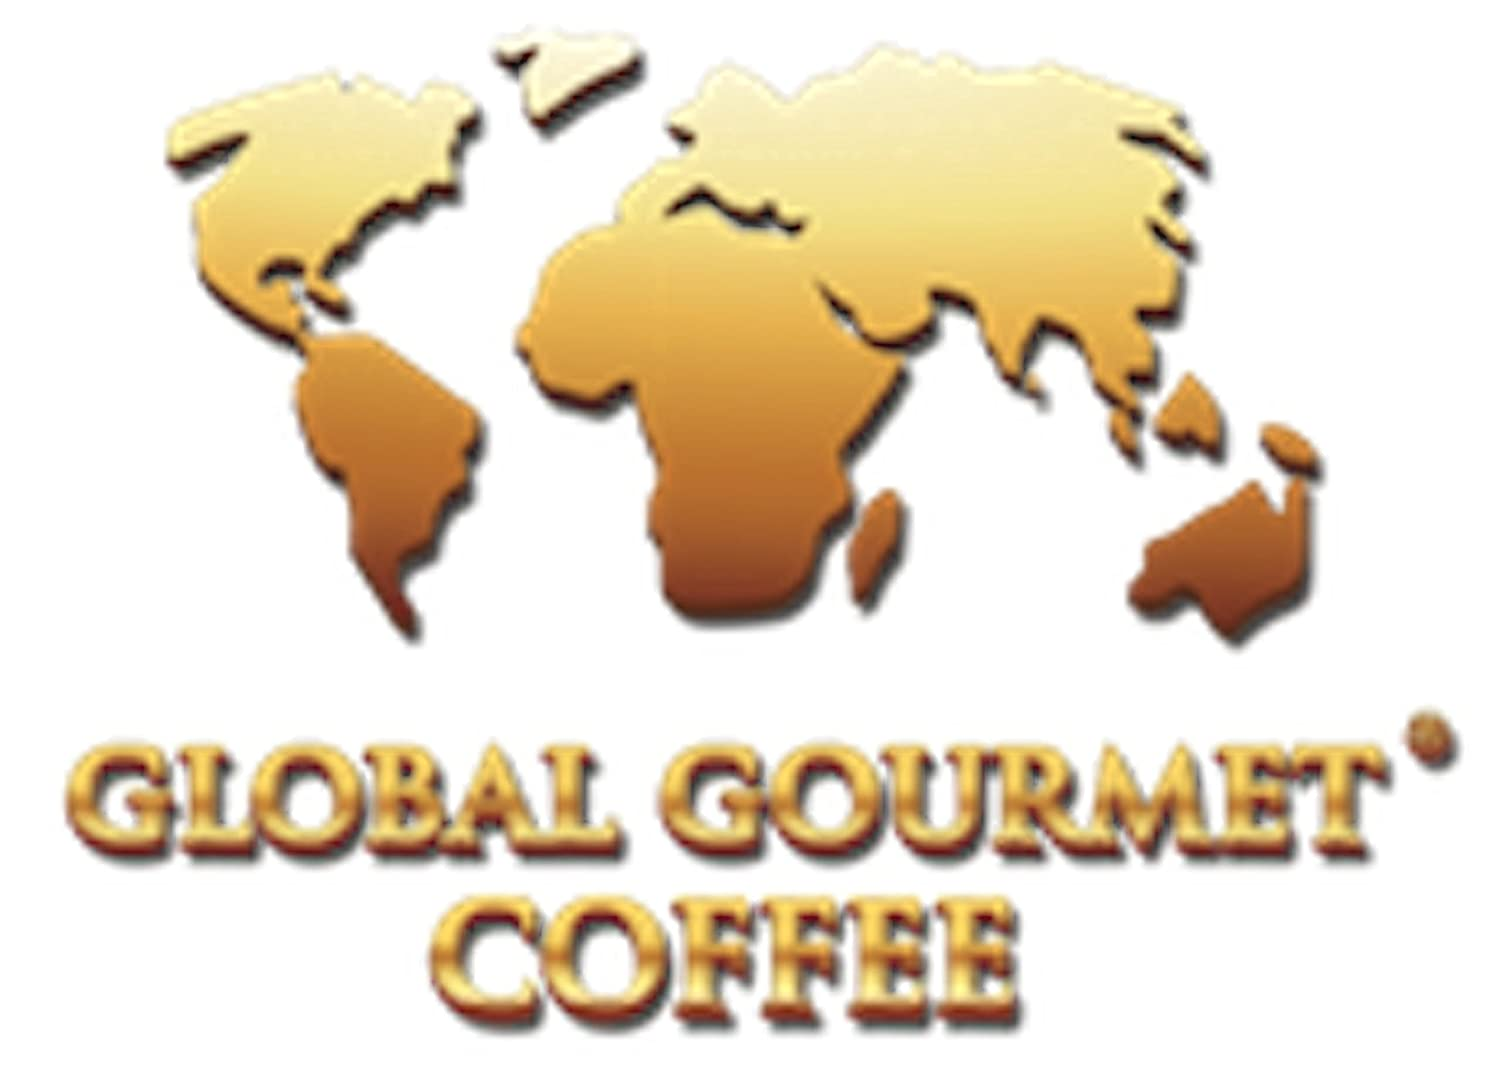 Amazon.com : Flavored Coffee (PEACHES & CREAM Flavored Coffee, 1lb Ground) : Ground Coffee : Grocery & Gourmet Food